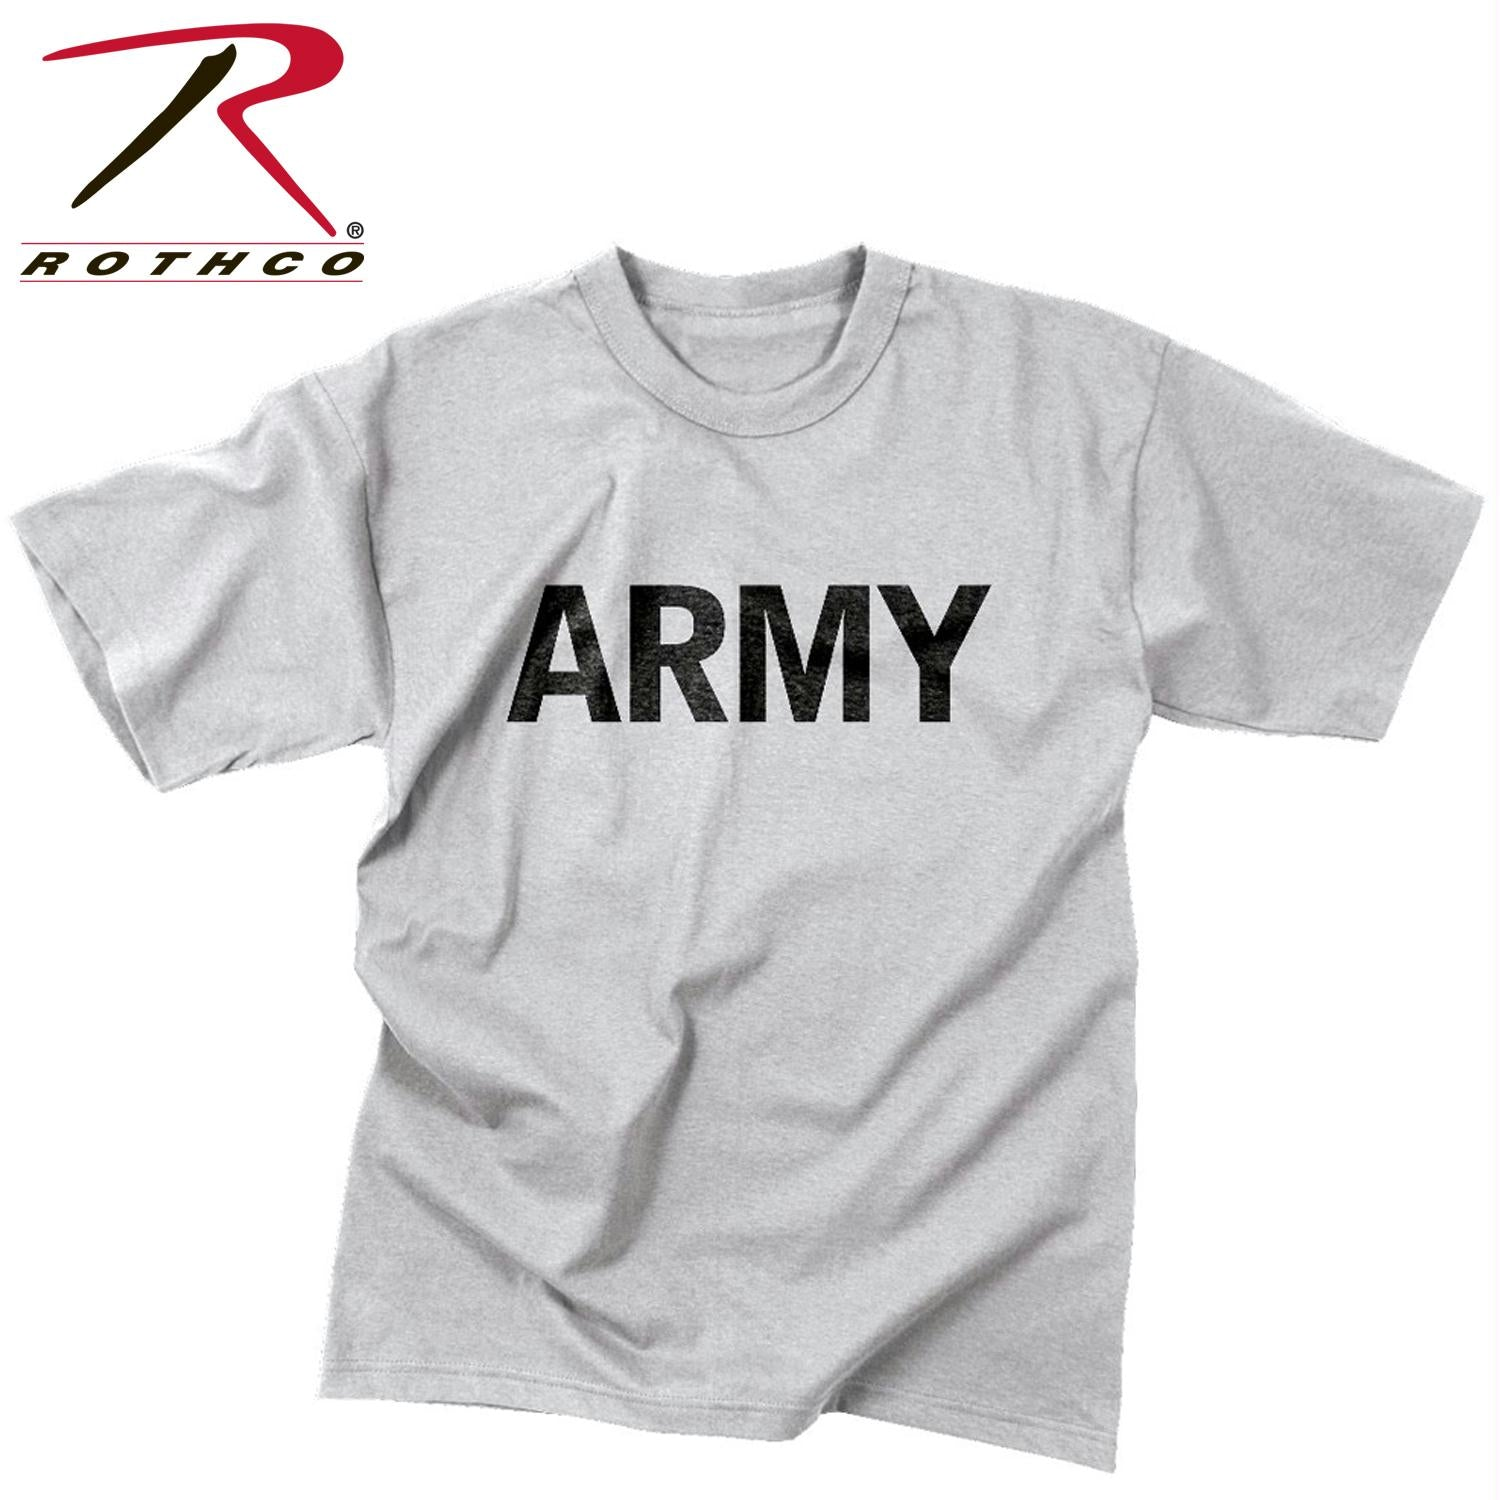 Rothco Army Moisture Wicking P/T T-Shirt